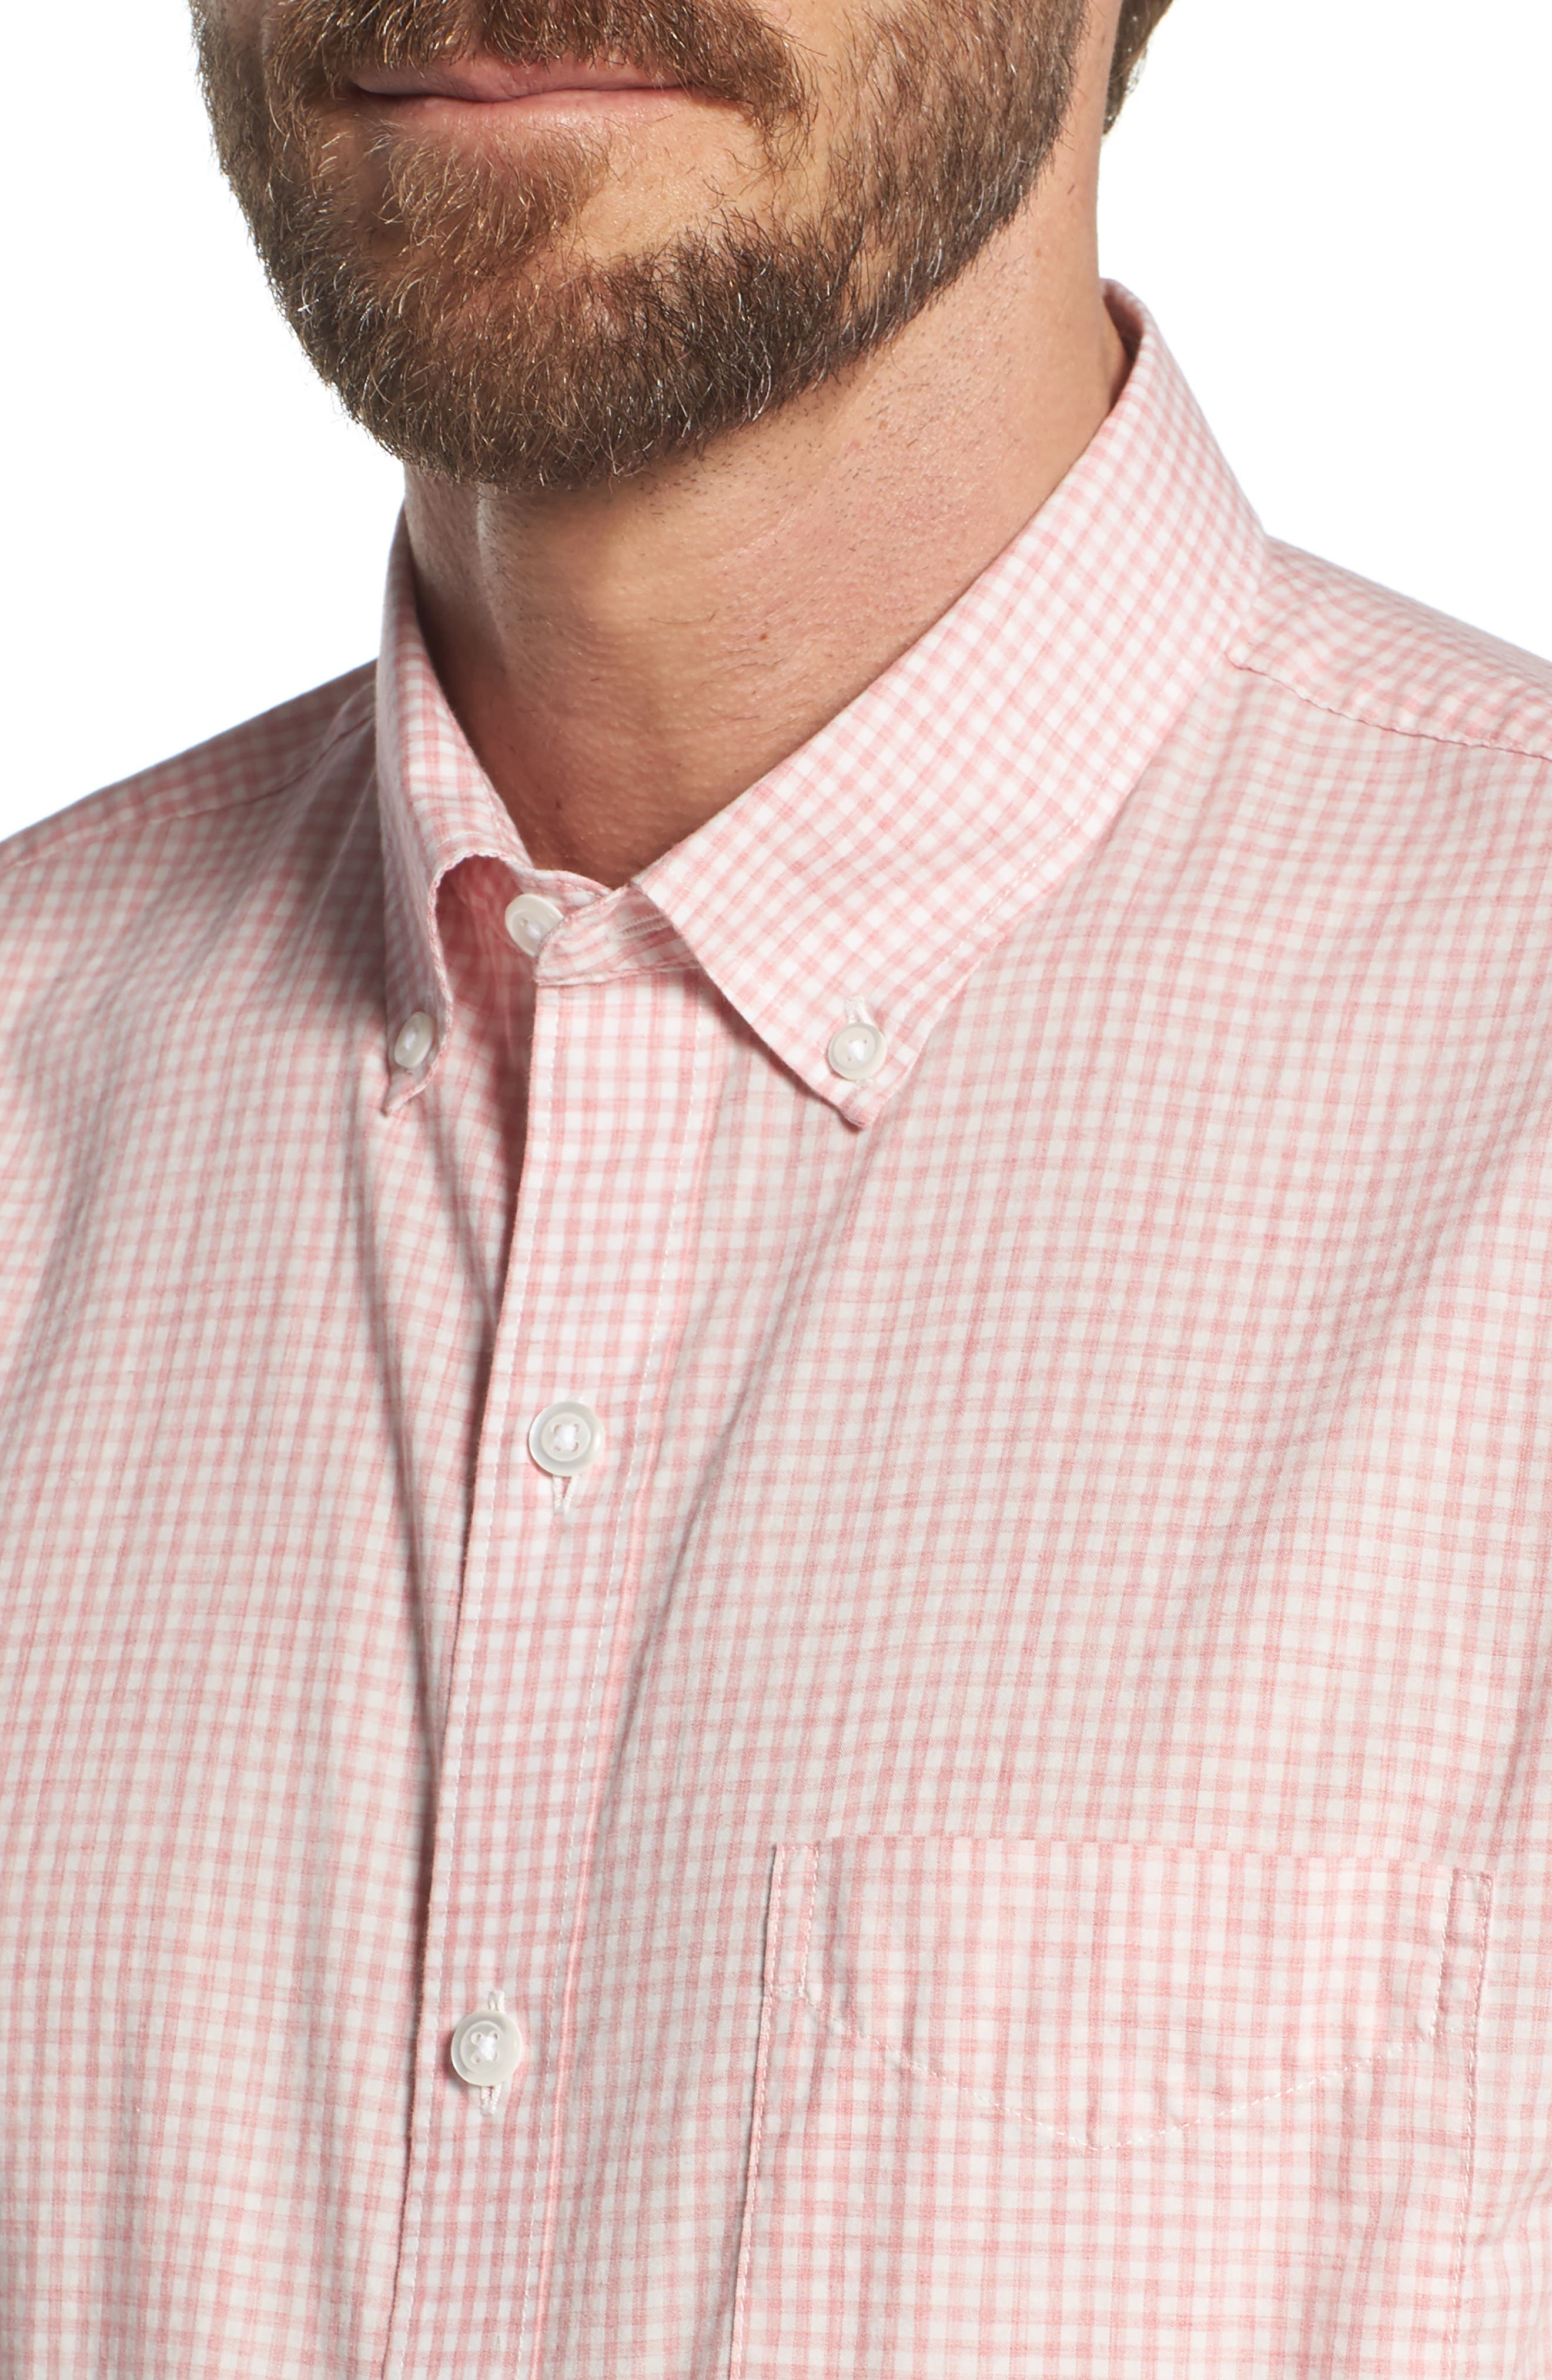 Summerweight Slim Fit Check Sport Shirt,                             Alternate thumbnail 2, color,                             Mini Gingham - Heather Rose